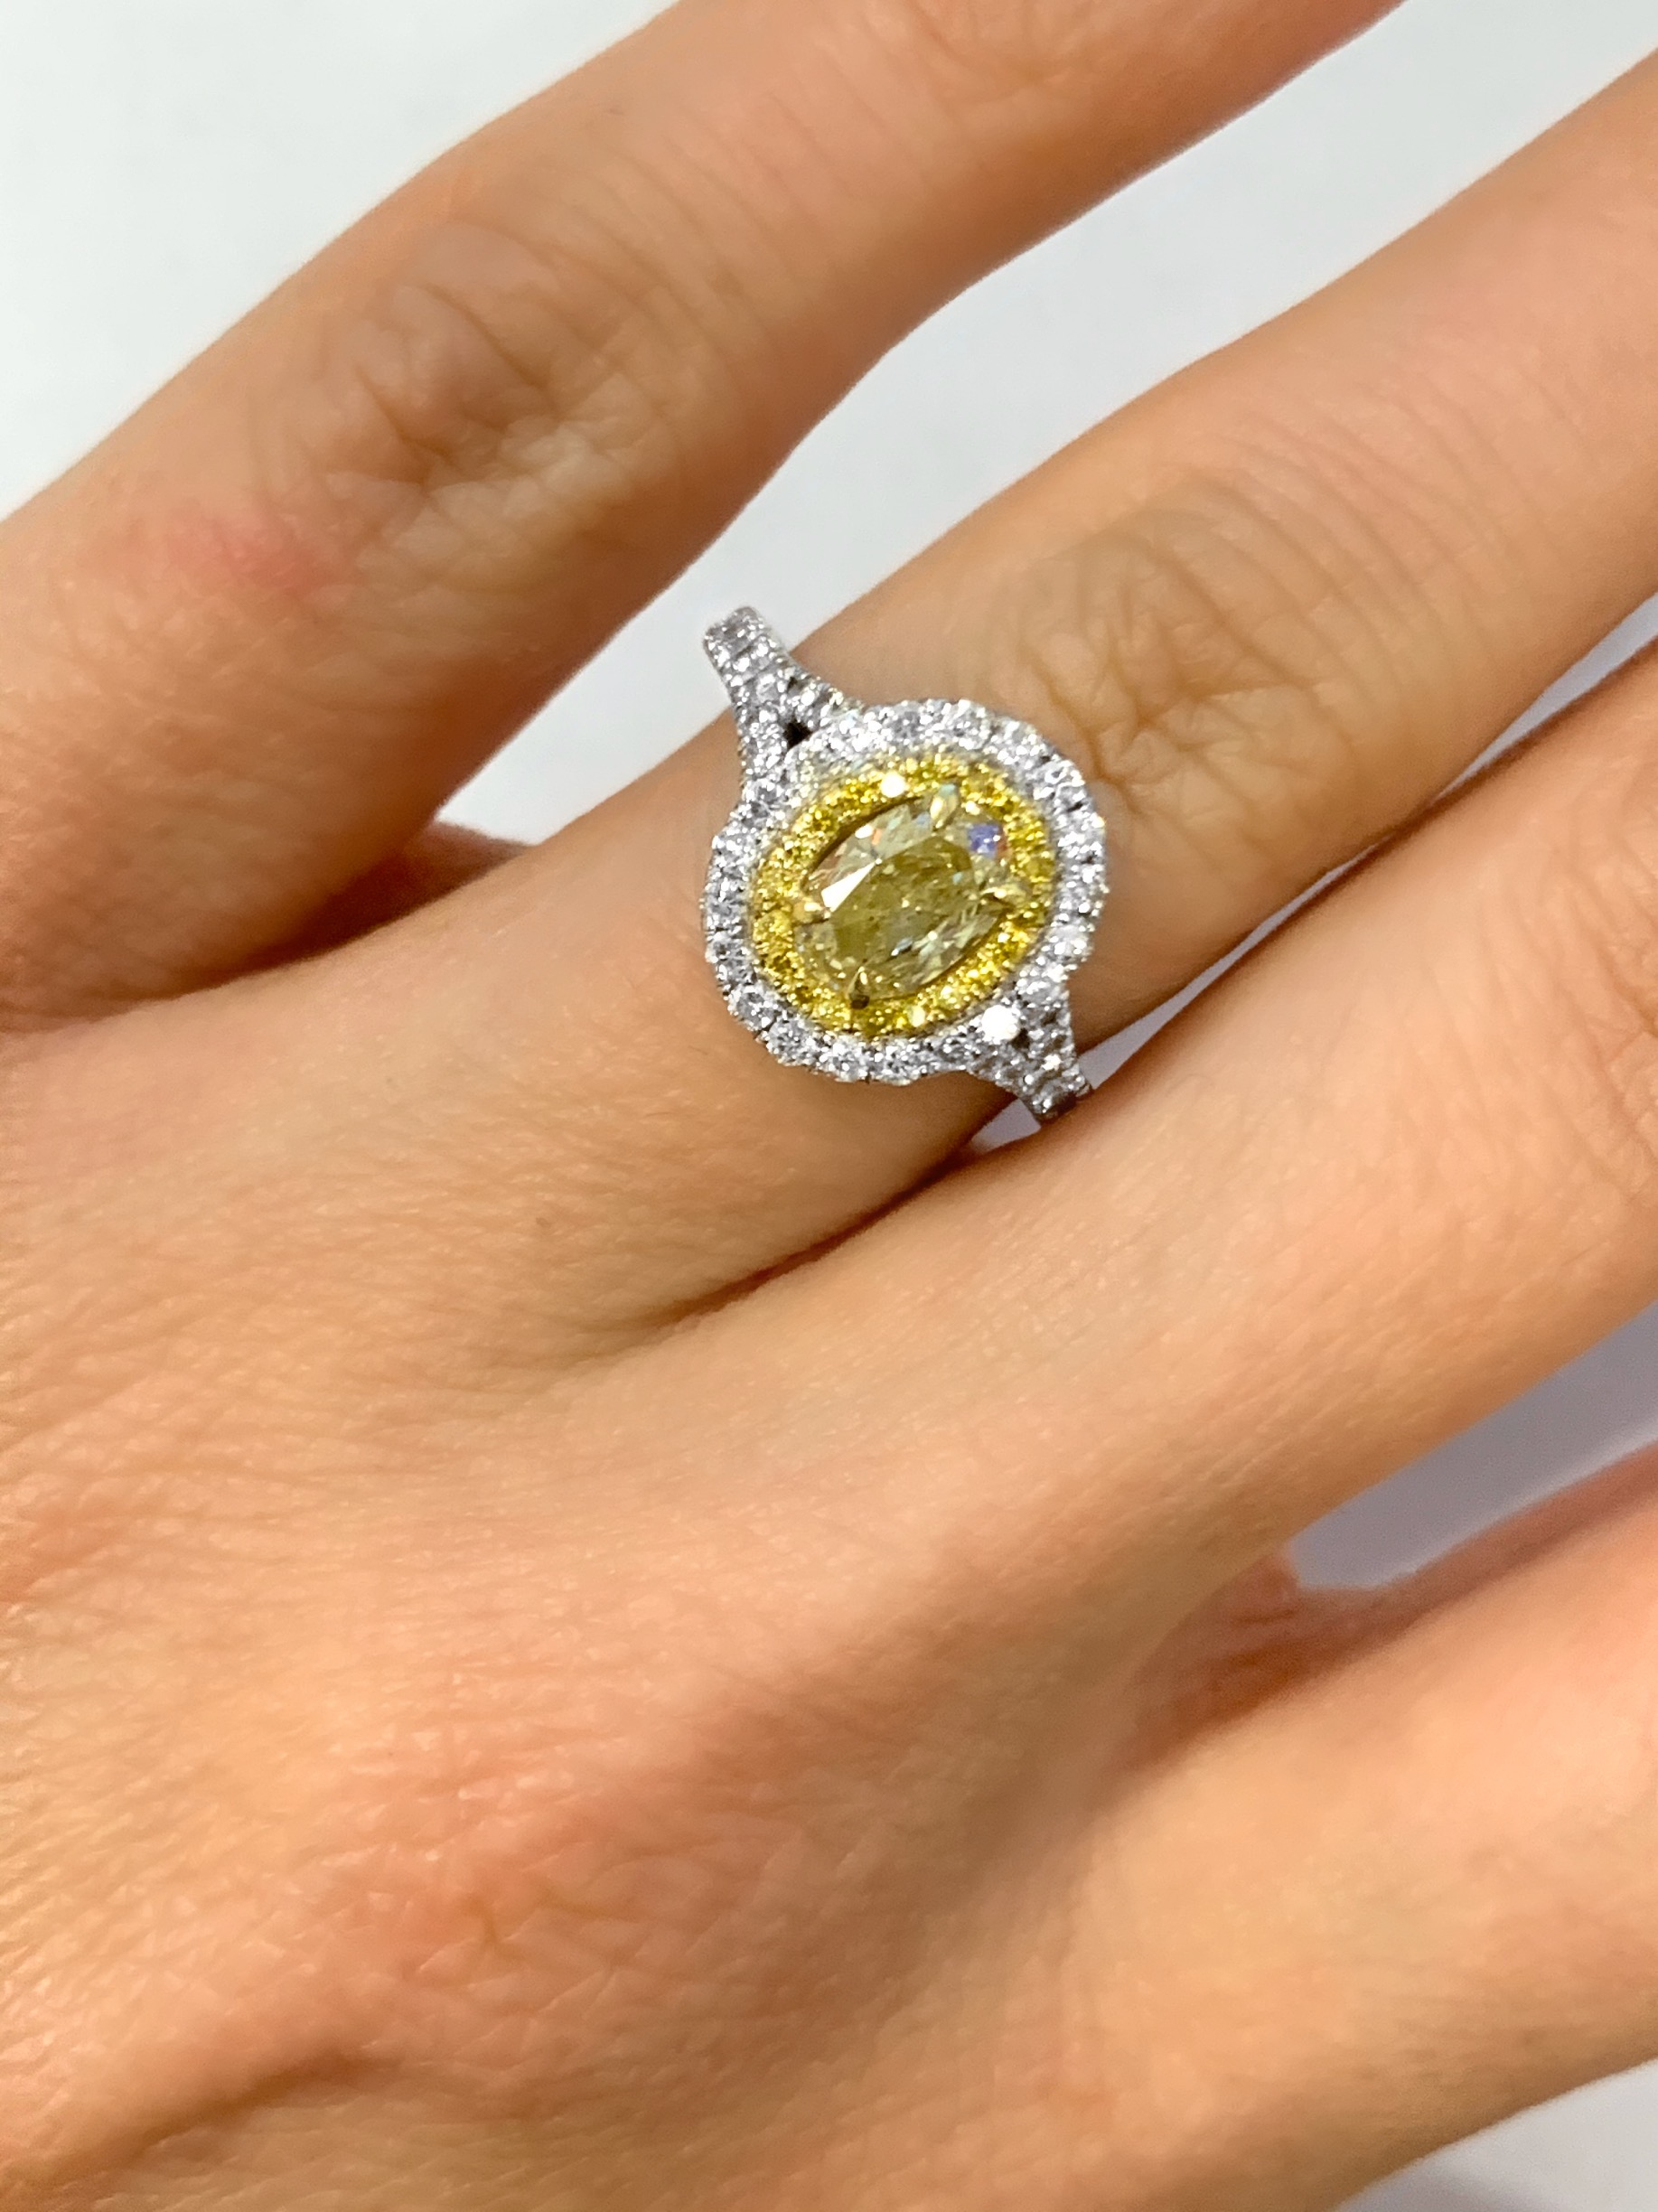 0 85ct Oval Fancy Light Yellow Diamond Engagement Ring I Do Now I Don T